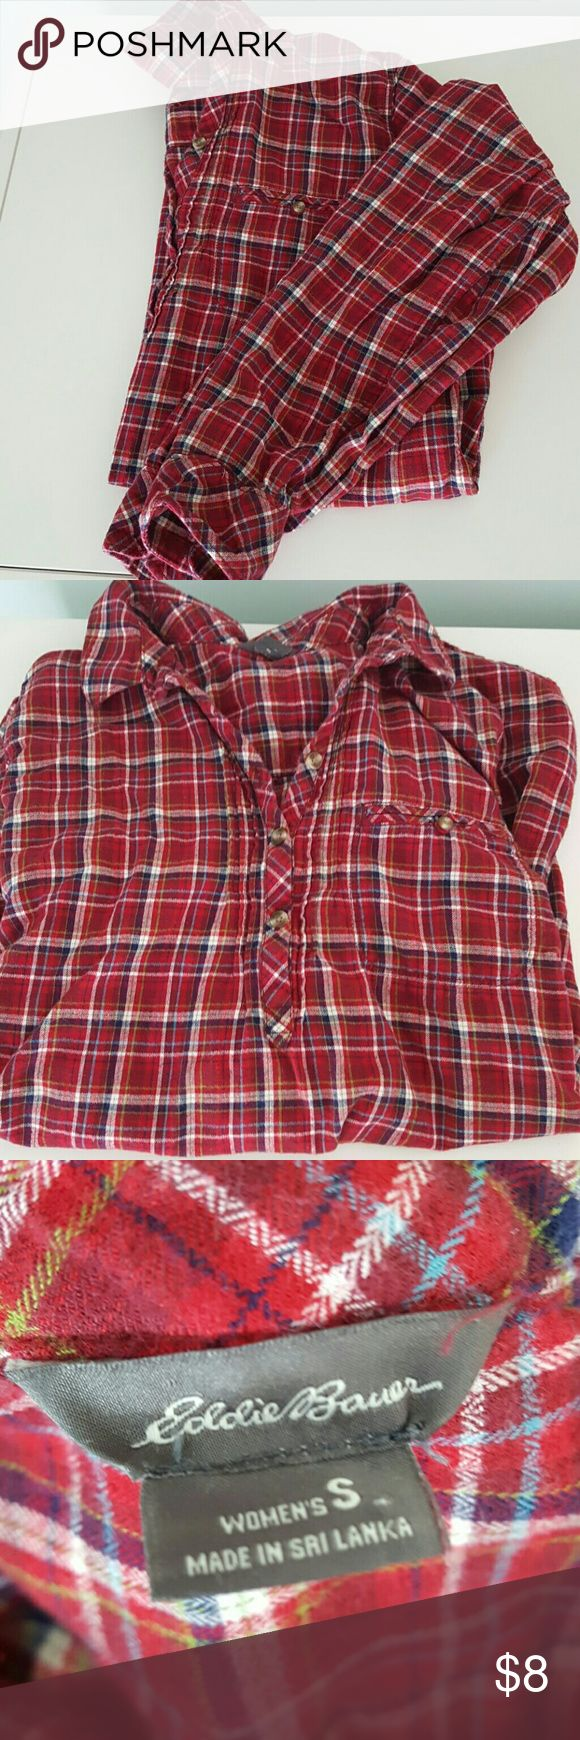 Vintage Eddie Bauer flannel tunic It's rare to find a flannel tunic! This top is super soft and incredibly cozy. EUC!  It is a tunic so the buttons only go half way down the front. The sleeves are full length but have side straps so you can roll them up and button them.  This top is perfect for flannel enthusiasts, spring hikers, and cuddly sleepers.  Buy before 12pm EST and I'll ship same day. Bundle with another item for a 20% discount! Eddie Bauer Tops Tunics